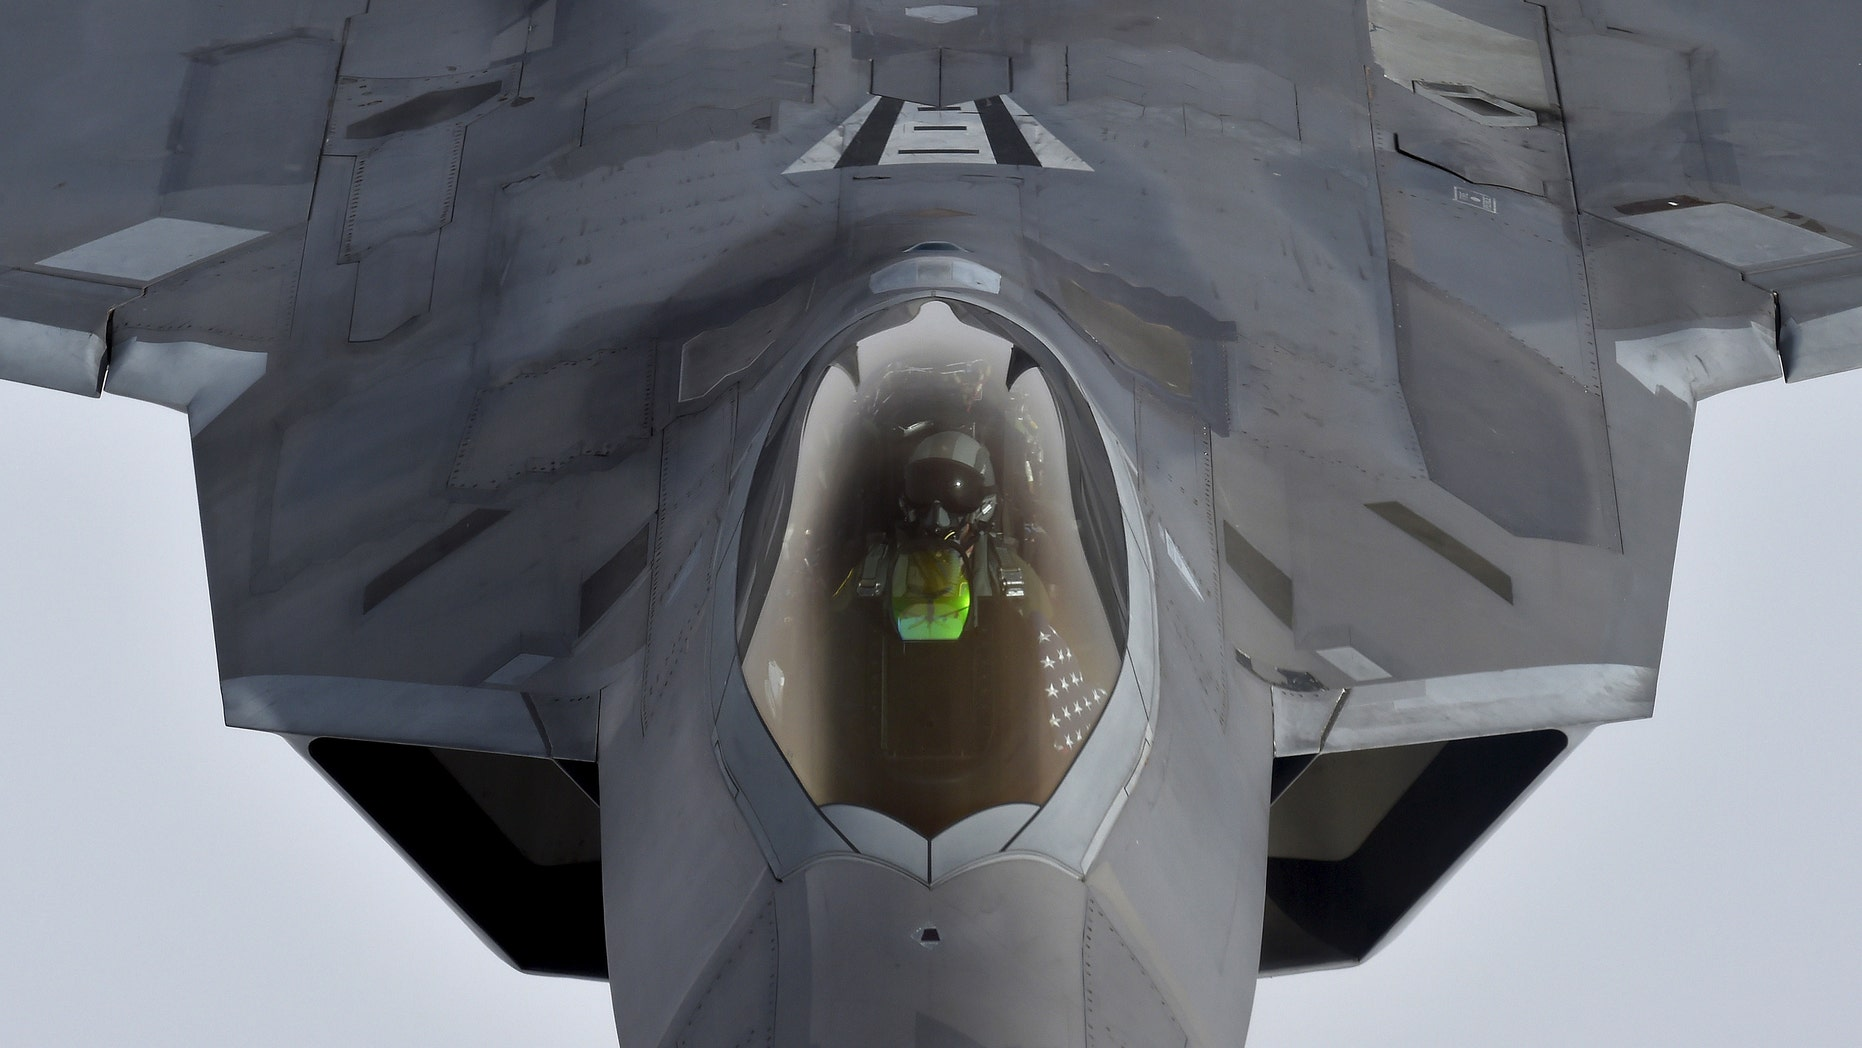 File photo - A pilot looks up from a U.S. F-22 Raptor fighter as it prepares to refuel in mid-air with a KC-135 refueling plane over European airspace during a flight to Britain from Mihail Kogalniceanu air base in Romania April 25, 2016.